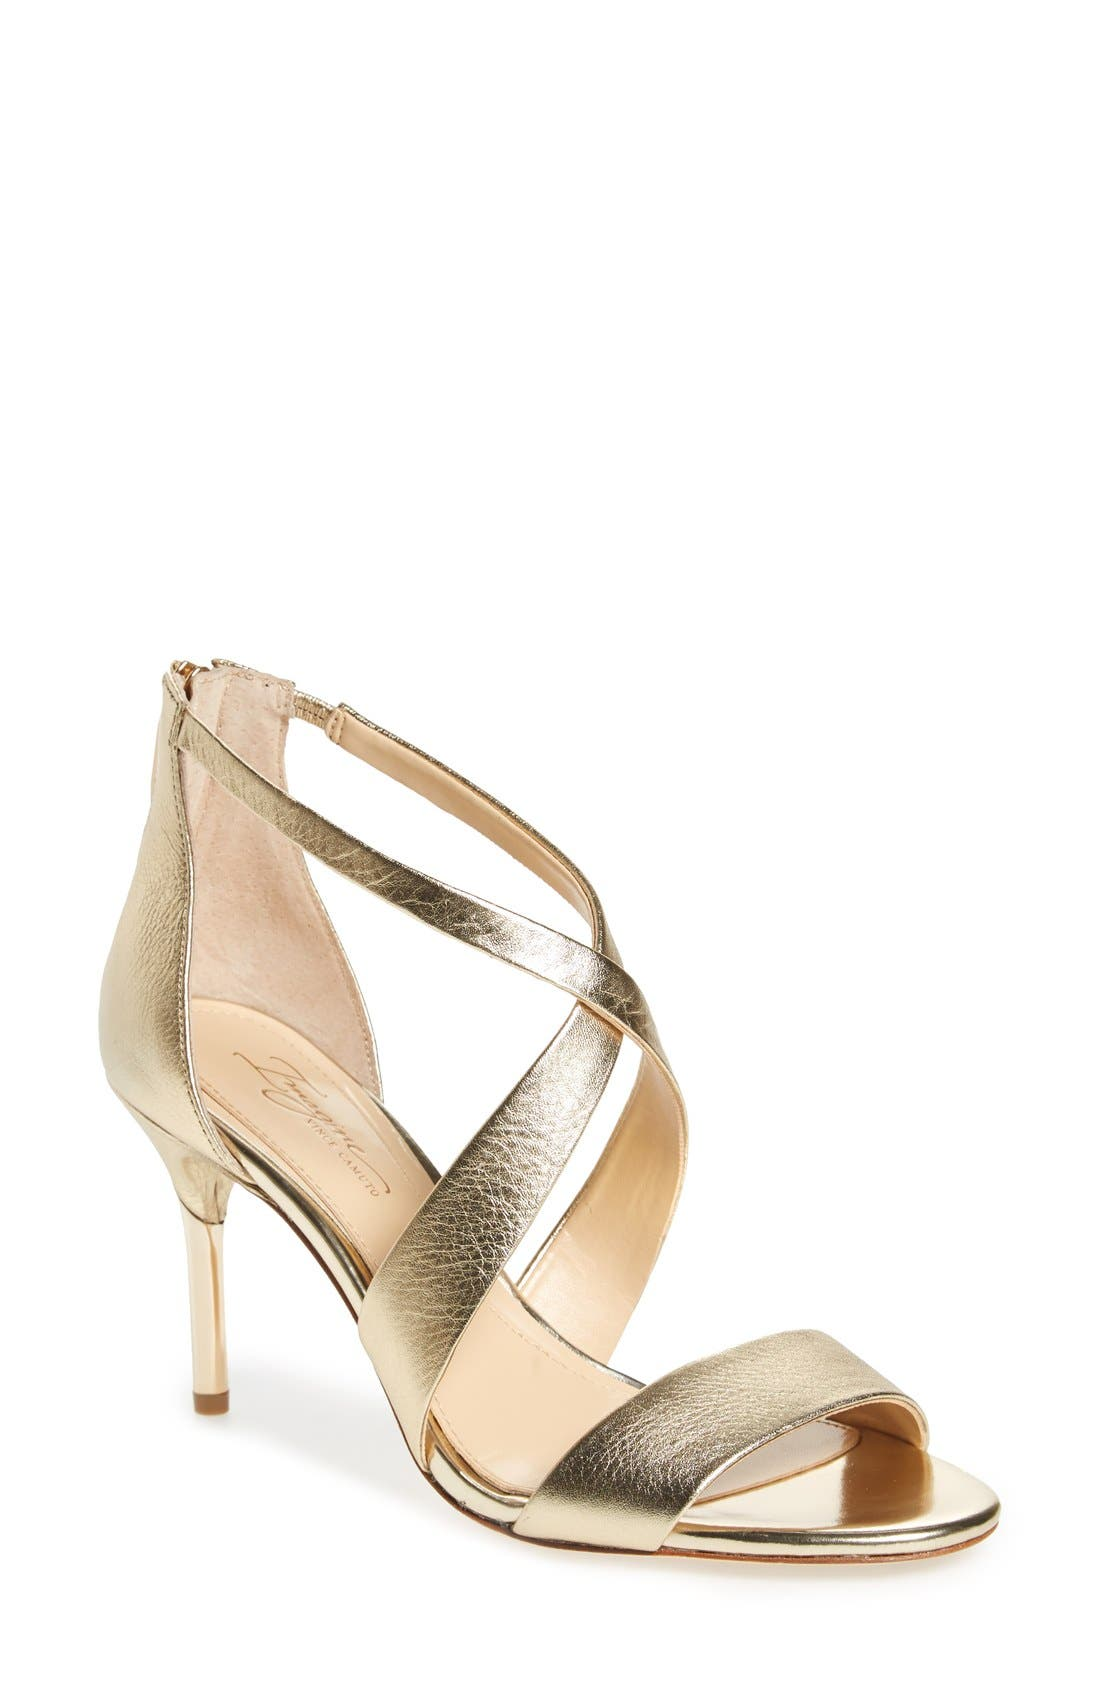 'Pascal 2' Strappy Evening Sandal,                         Main,                         color, SOFT GOLD LEATHER